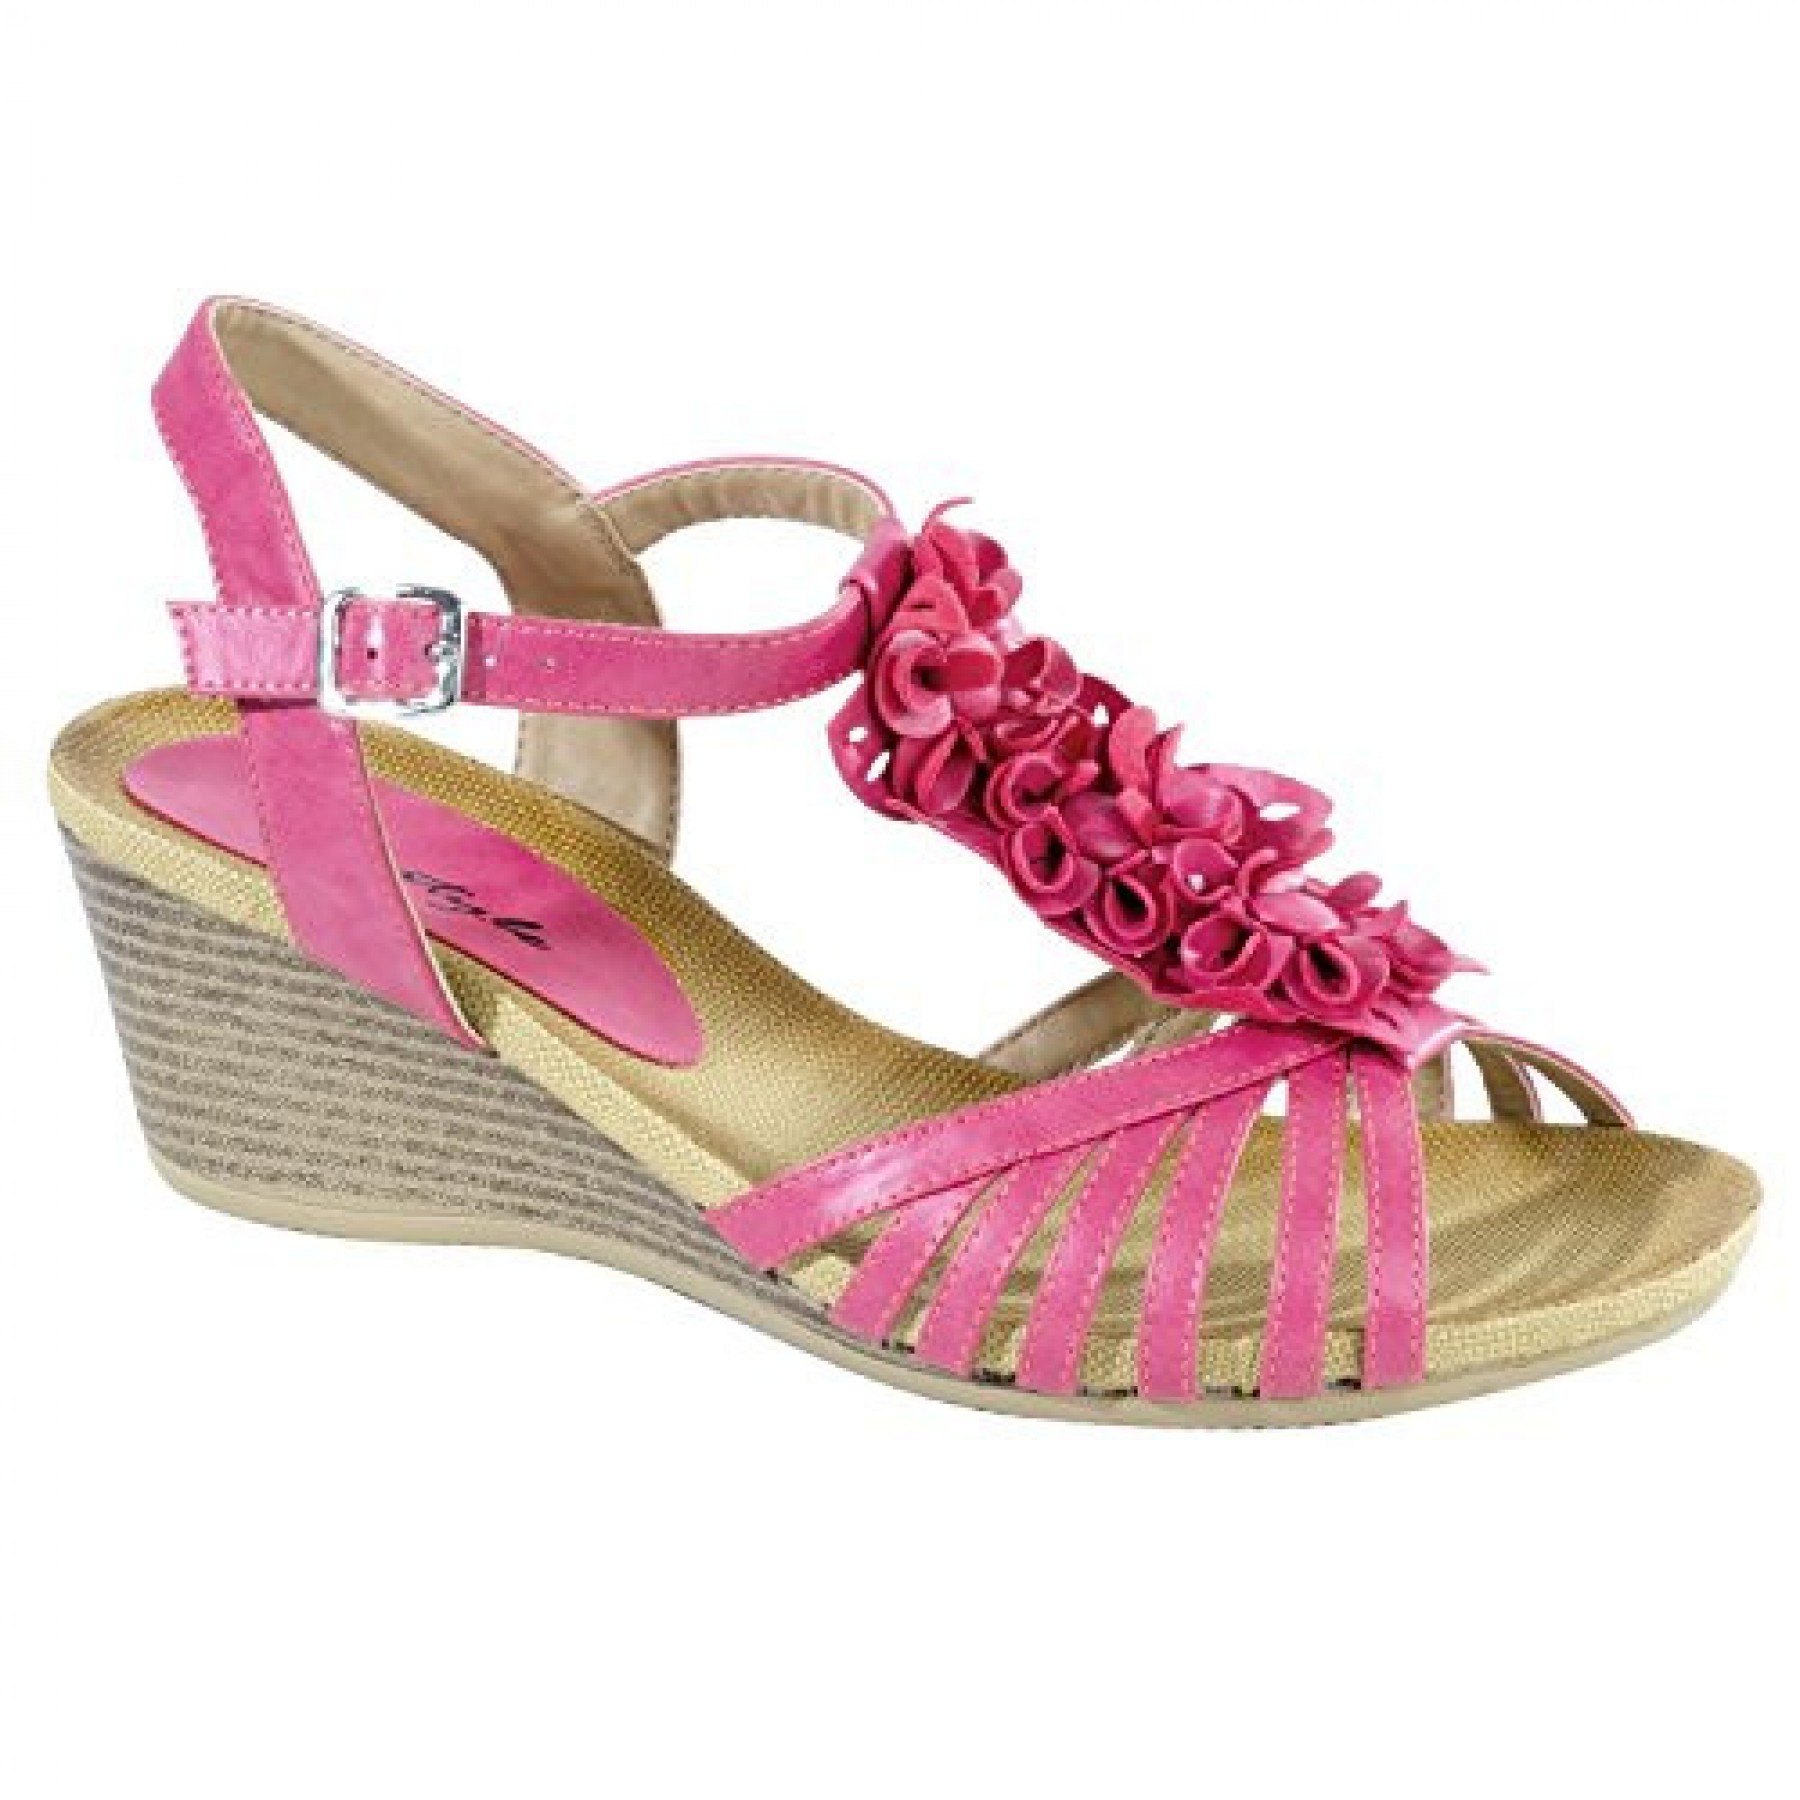 Women's Coral Caroica Manmade Wedge Sandal with Gorgeous Flowered Vamp